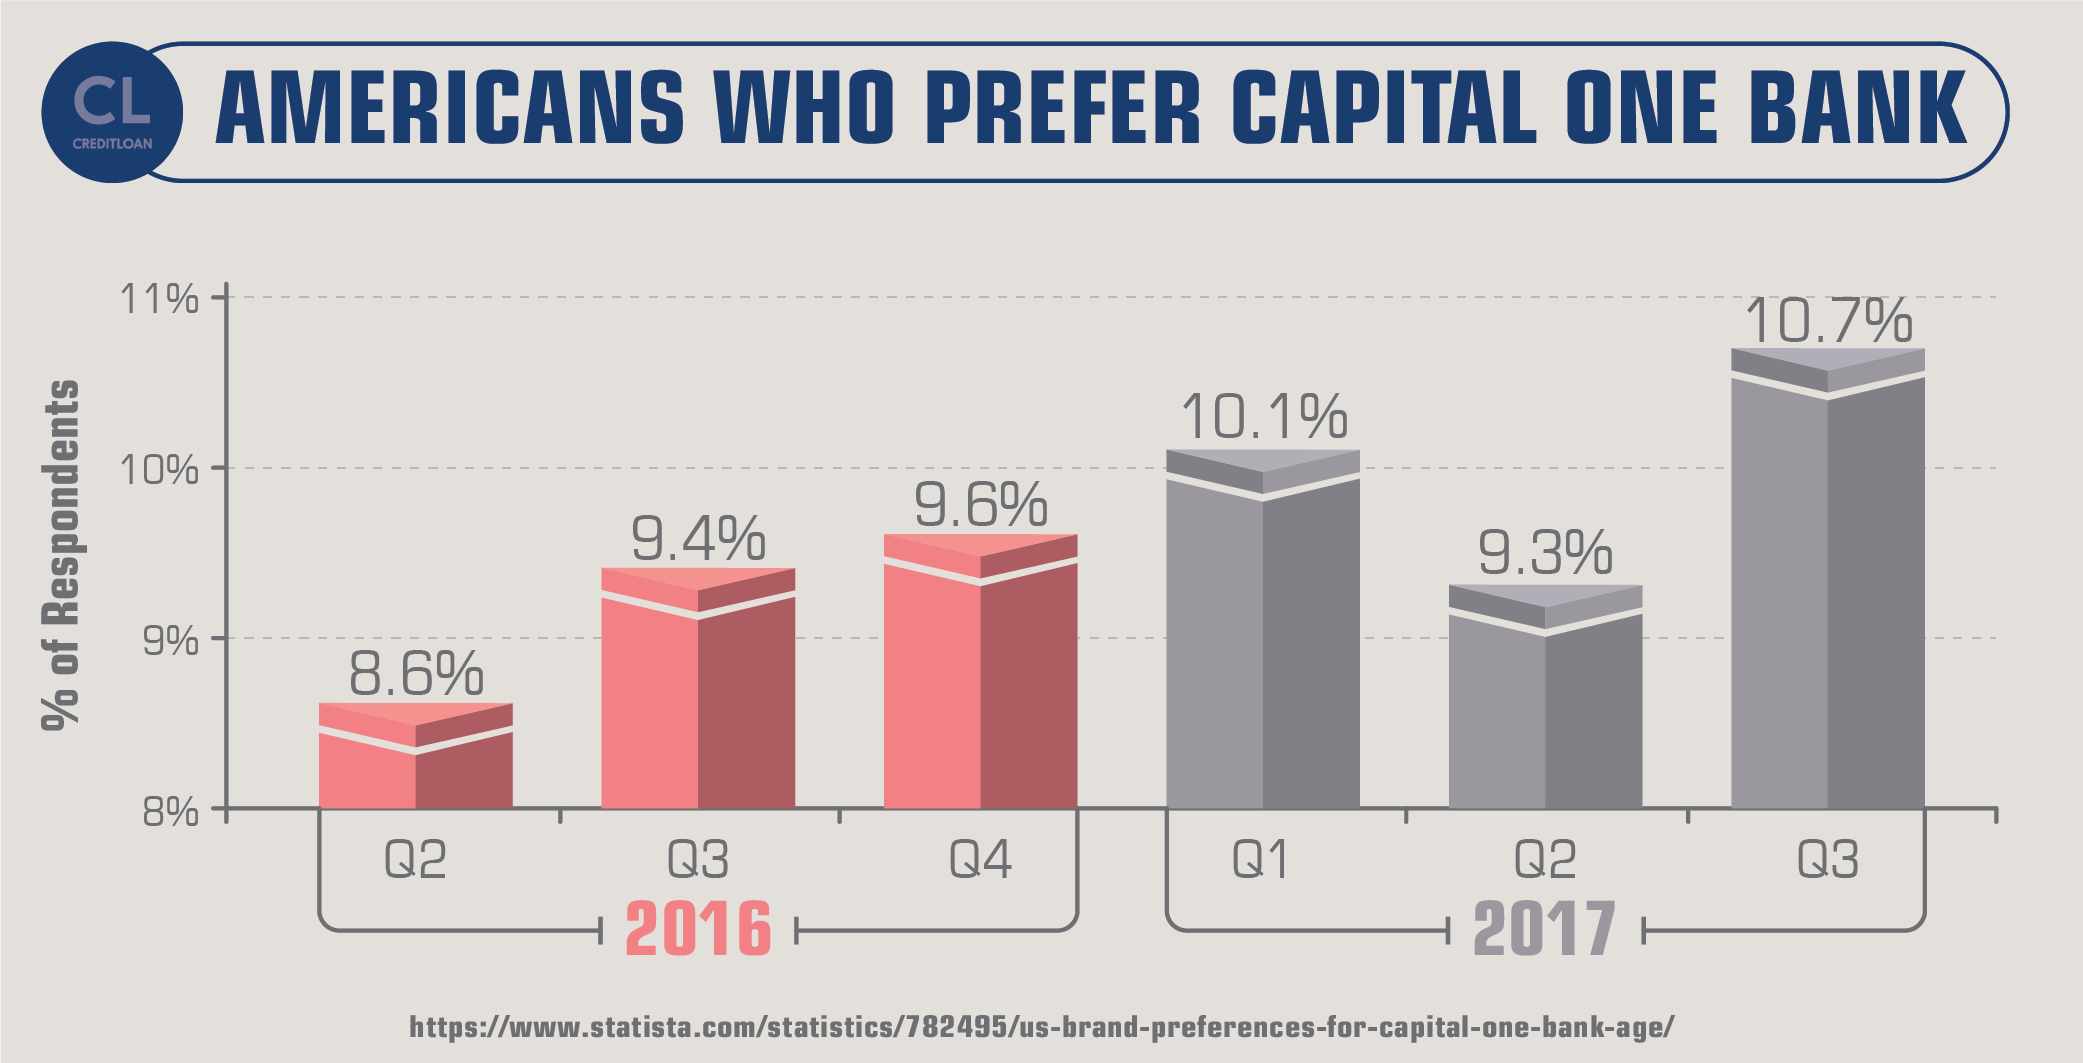 Americans Who Prefer Capital One Bank